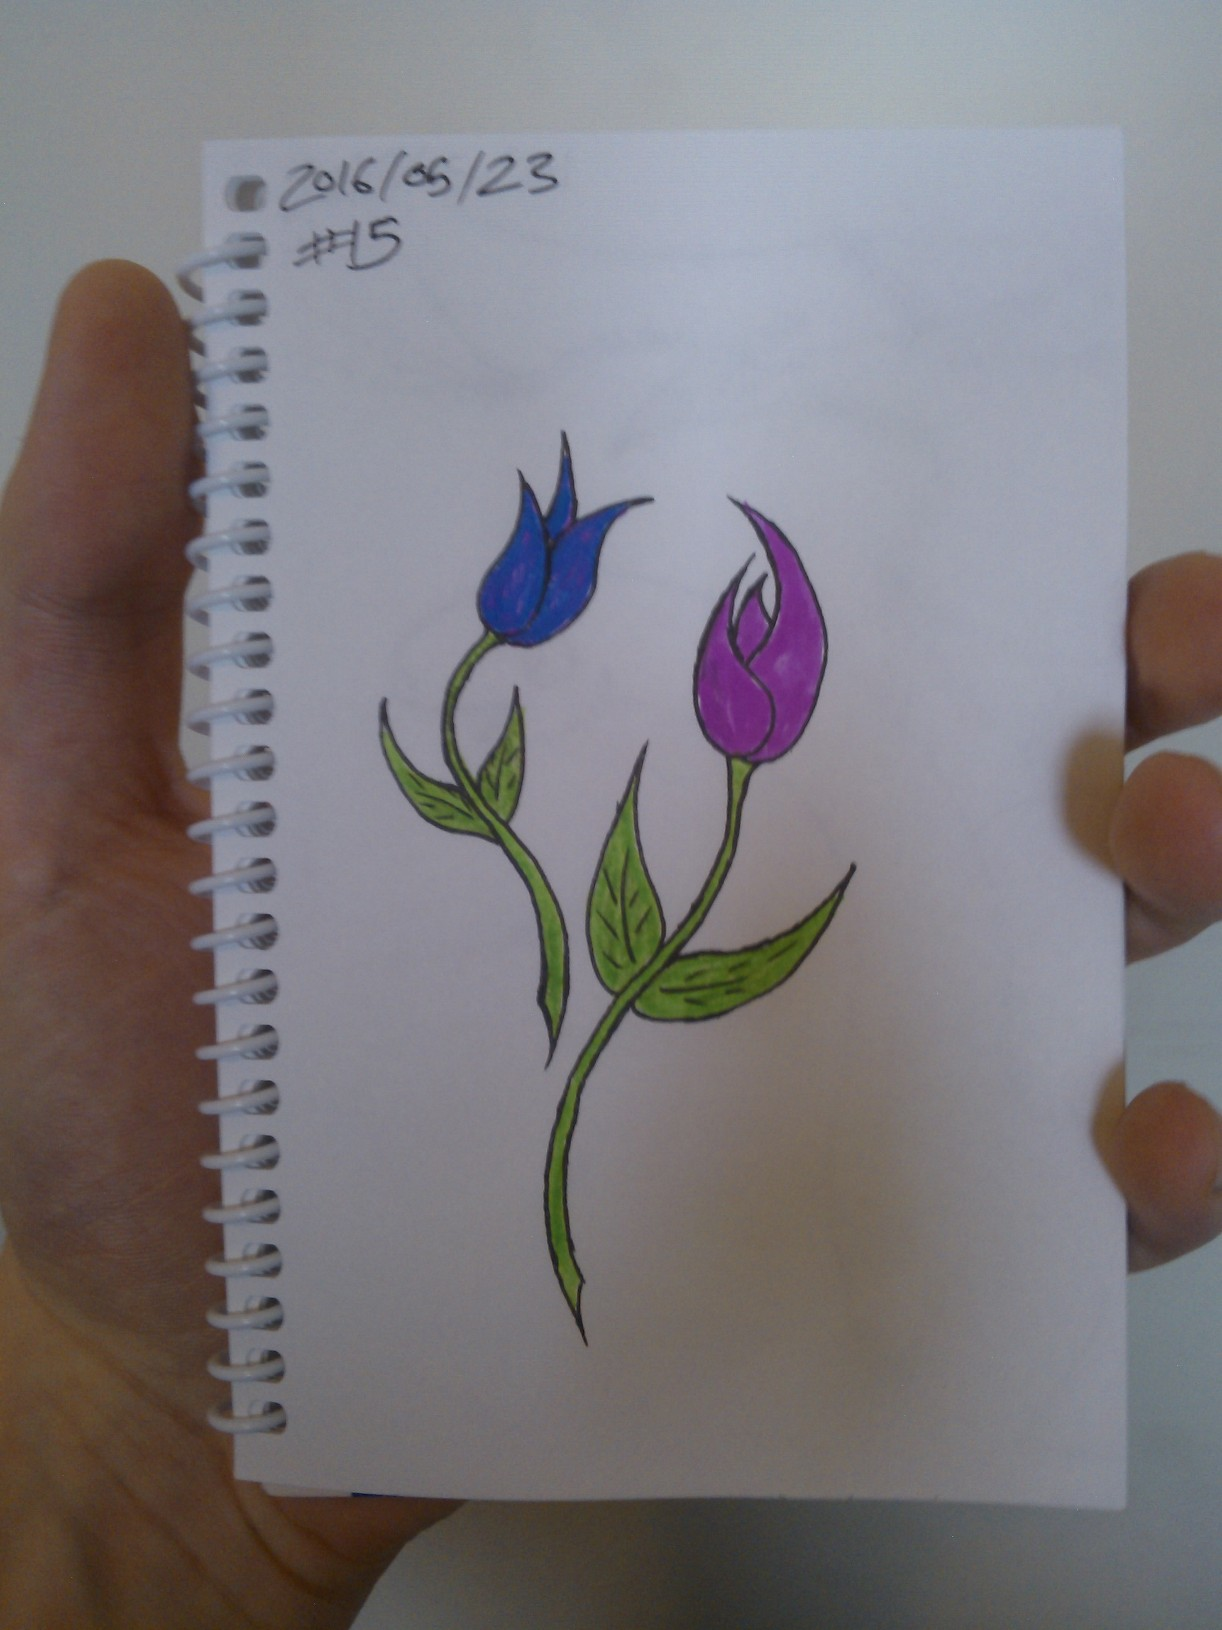 Every Day A Drawing #15: Flowers